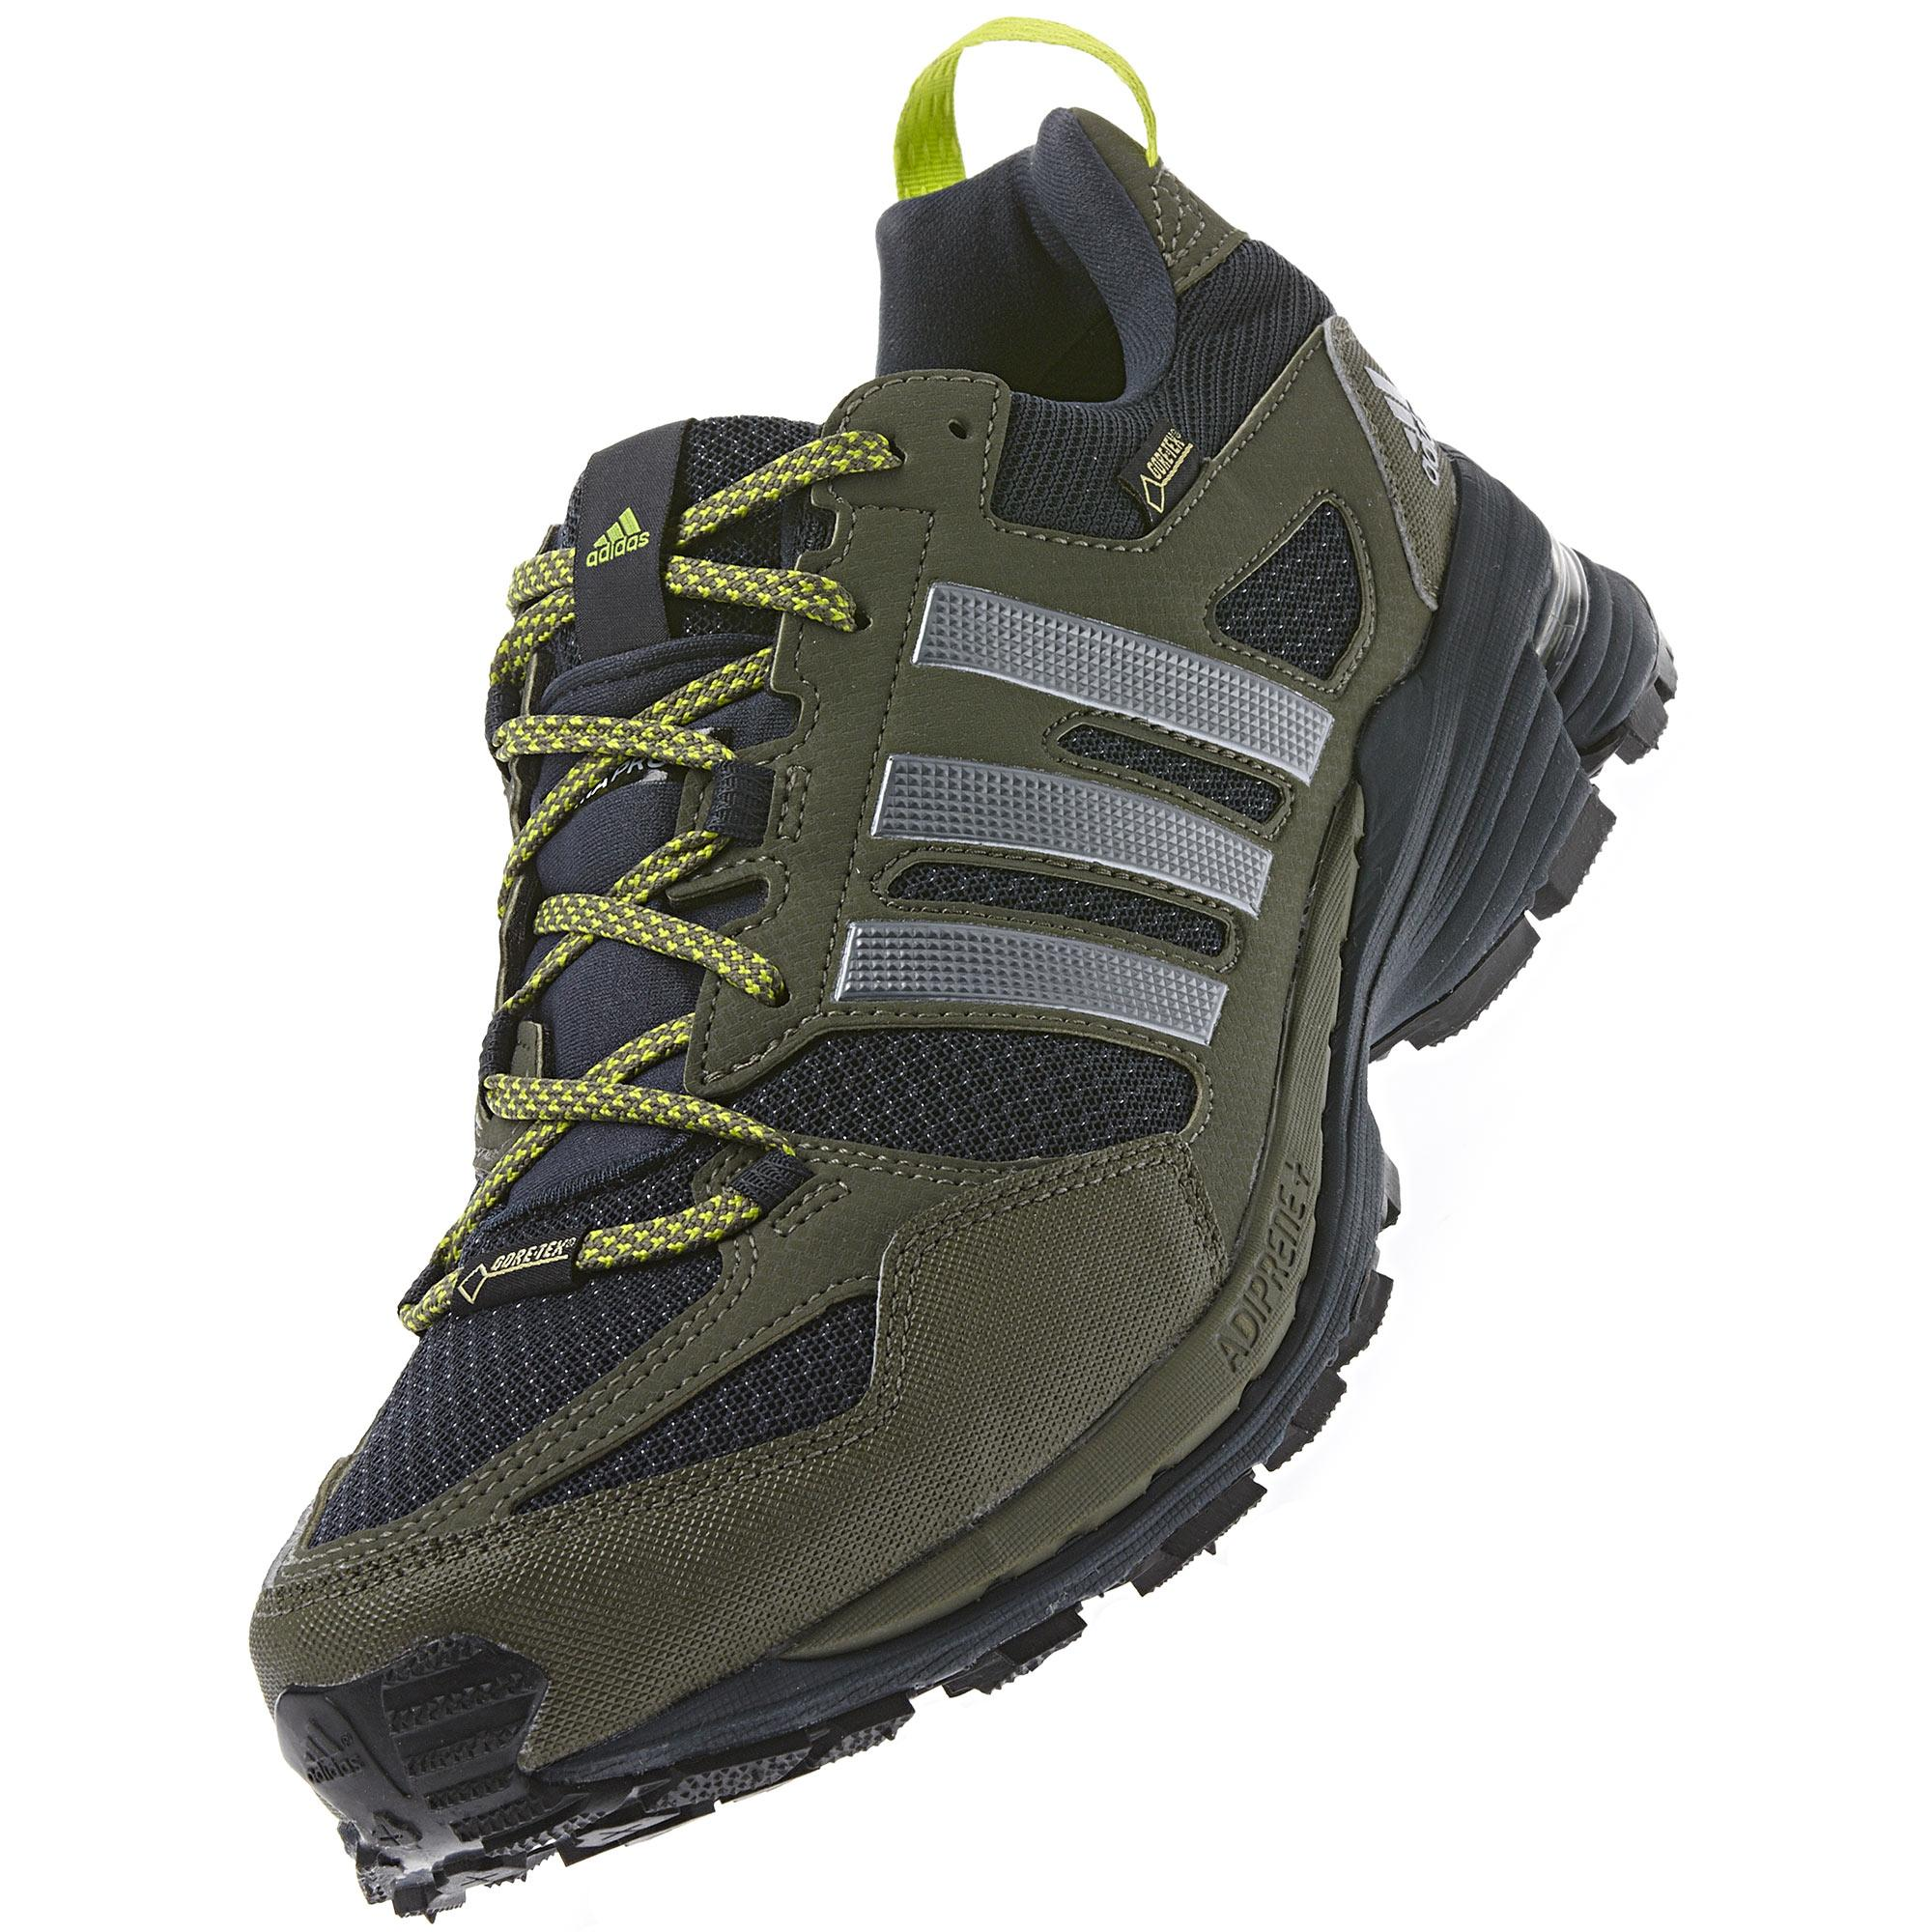 60791f0f6 Adidas Mens Supernova Riot 5 GTX Running Shoes - Green - Tennisnuts.com